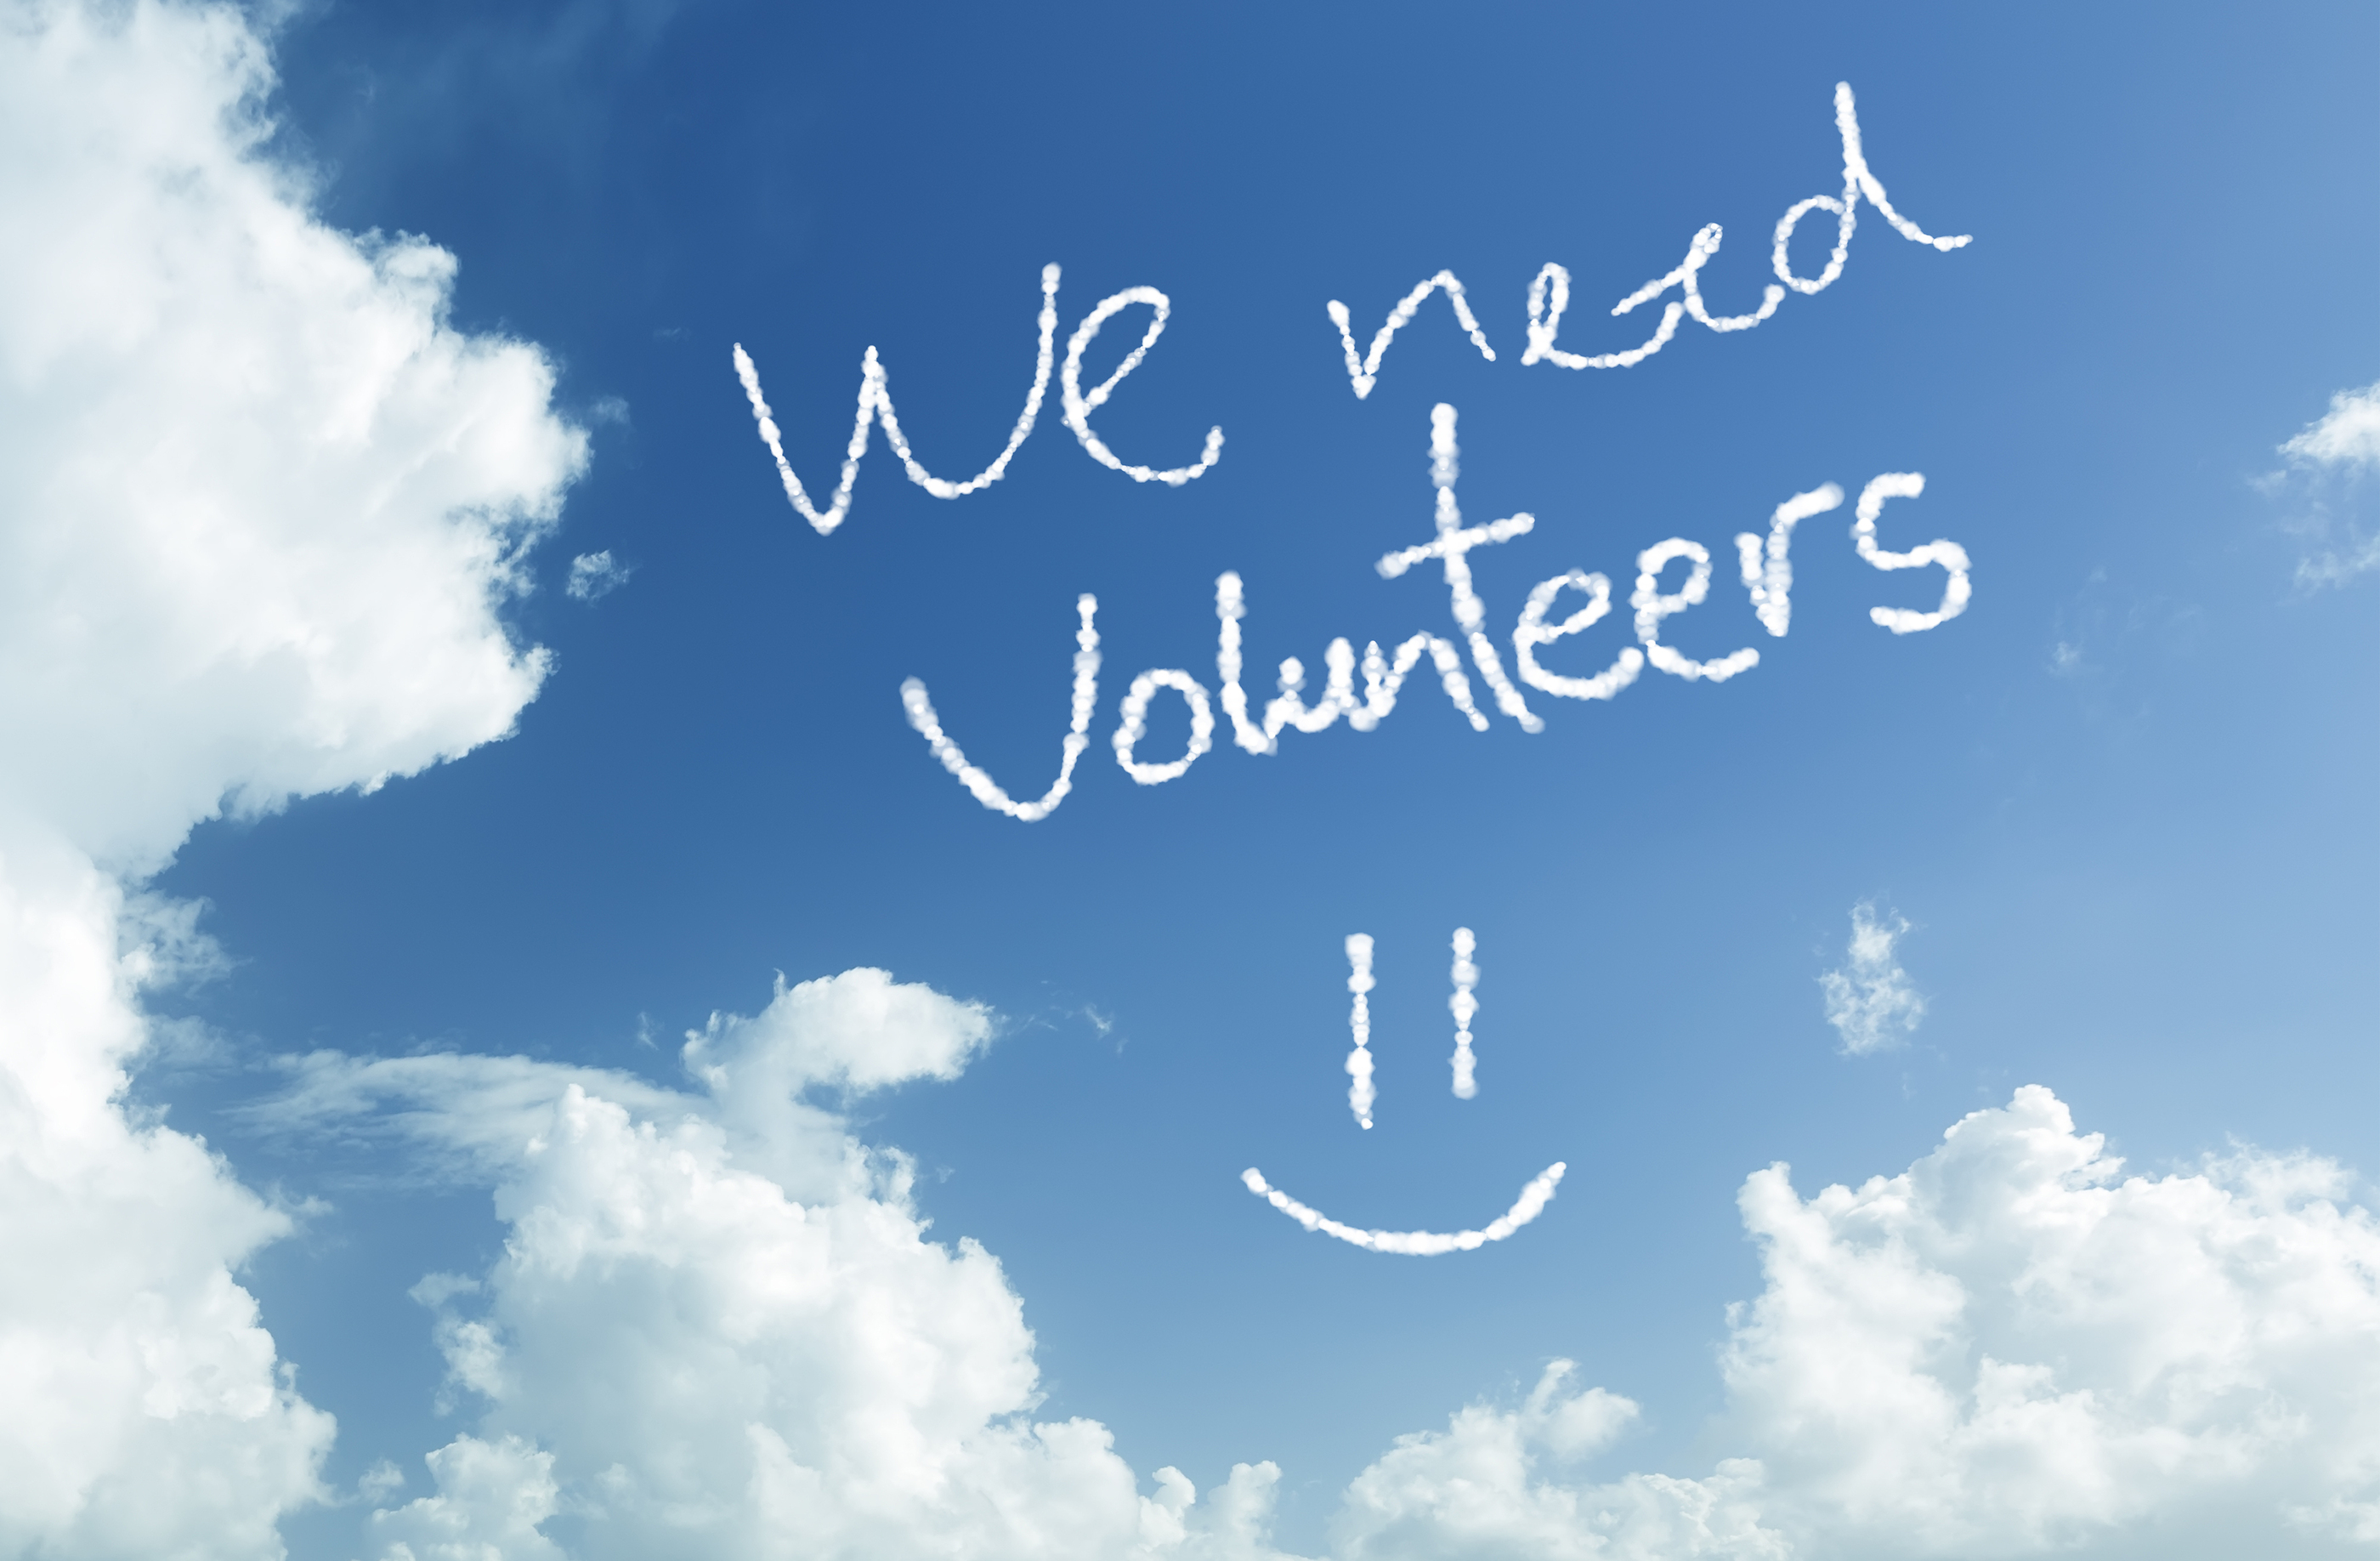 bigstock-We-Need-Volunteers-written-in--147201680